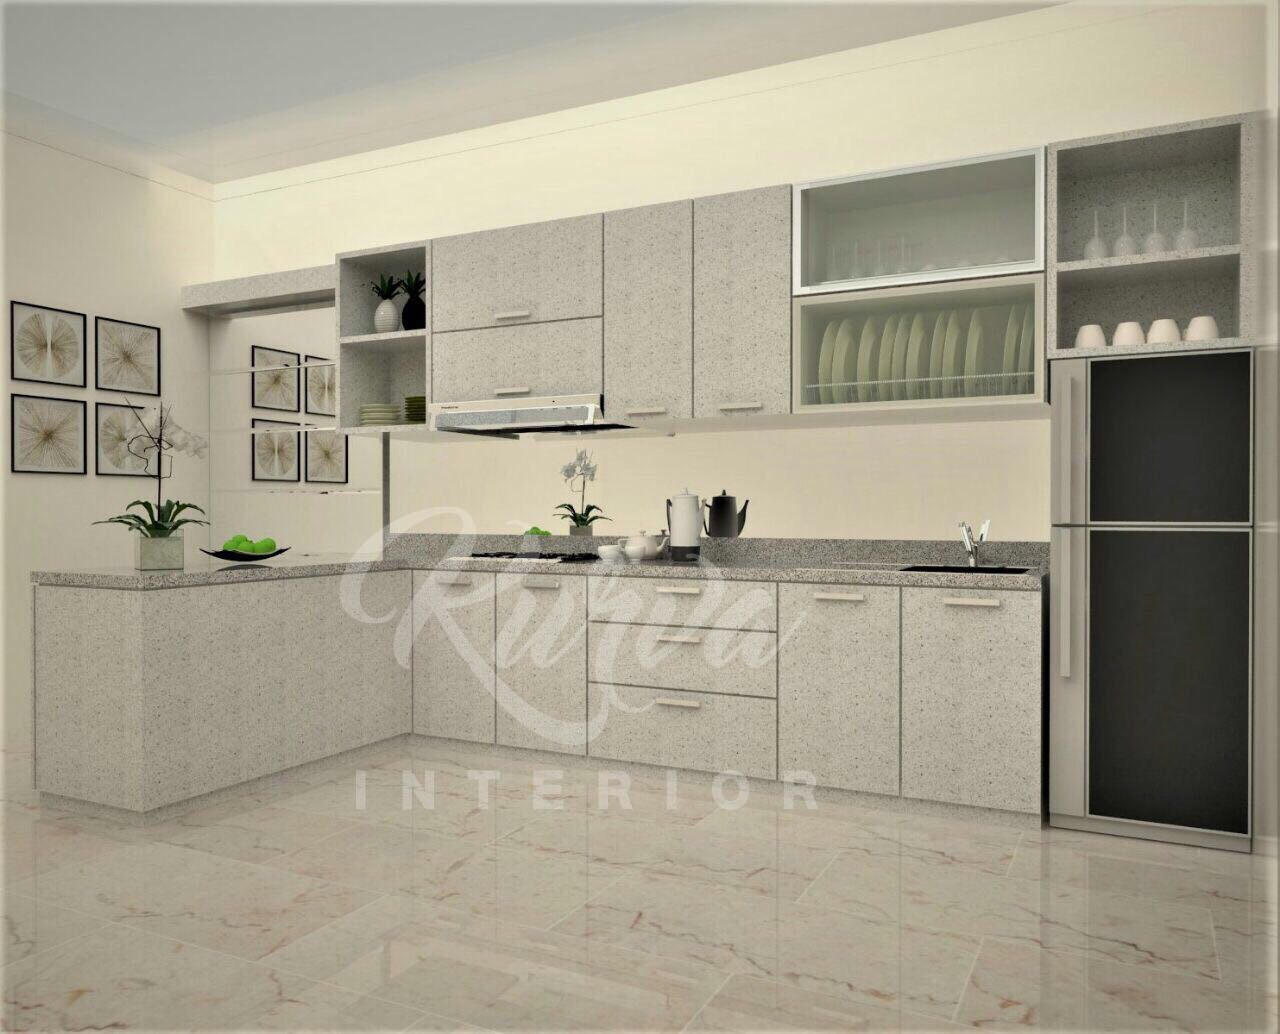 Kitchenset Wisma Permai Waru